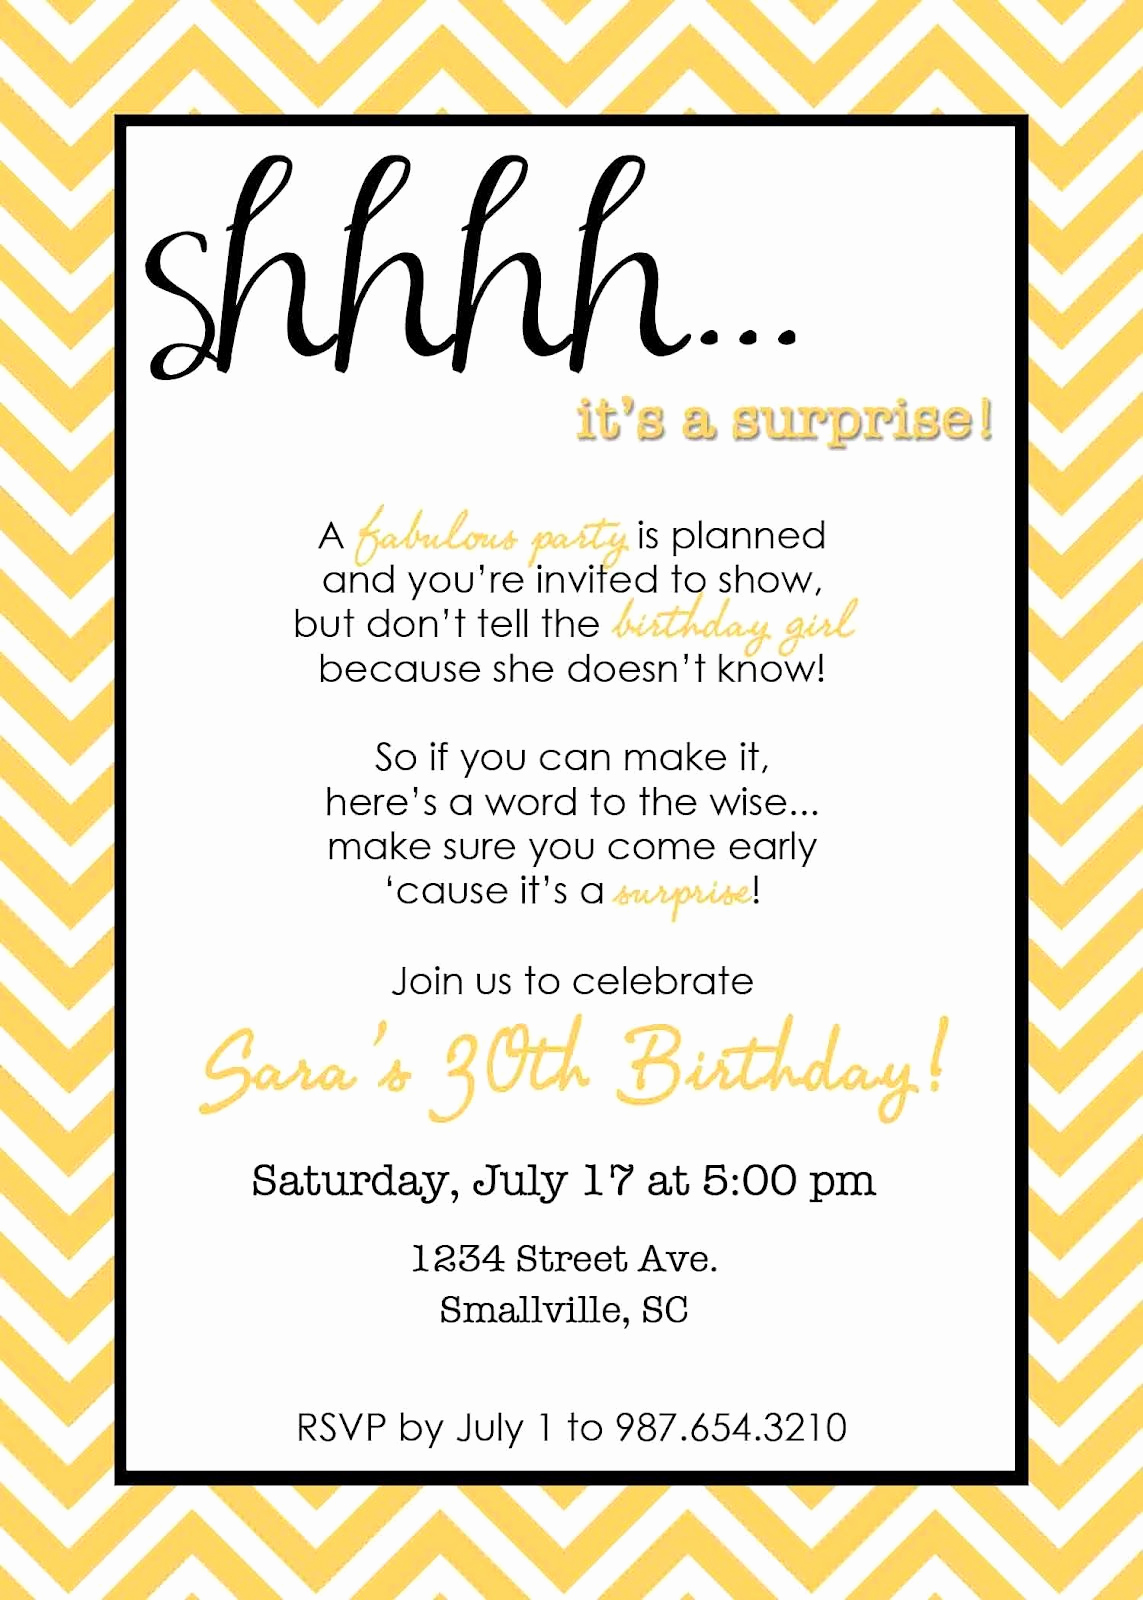 Suprise Birthday Party Invitation Elegant Wording for Surprise Birthday Party